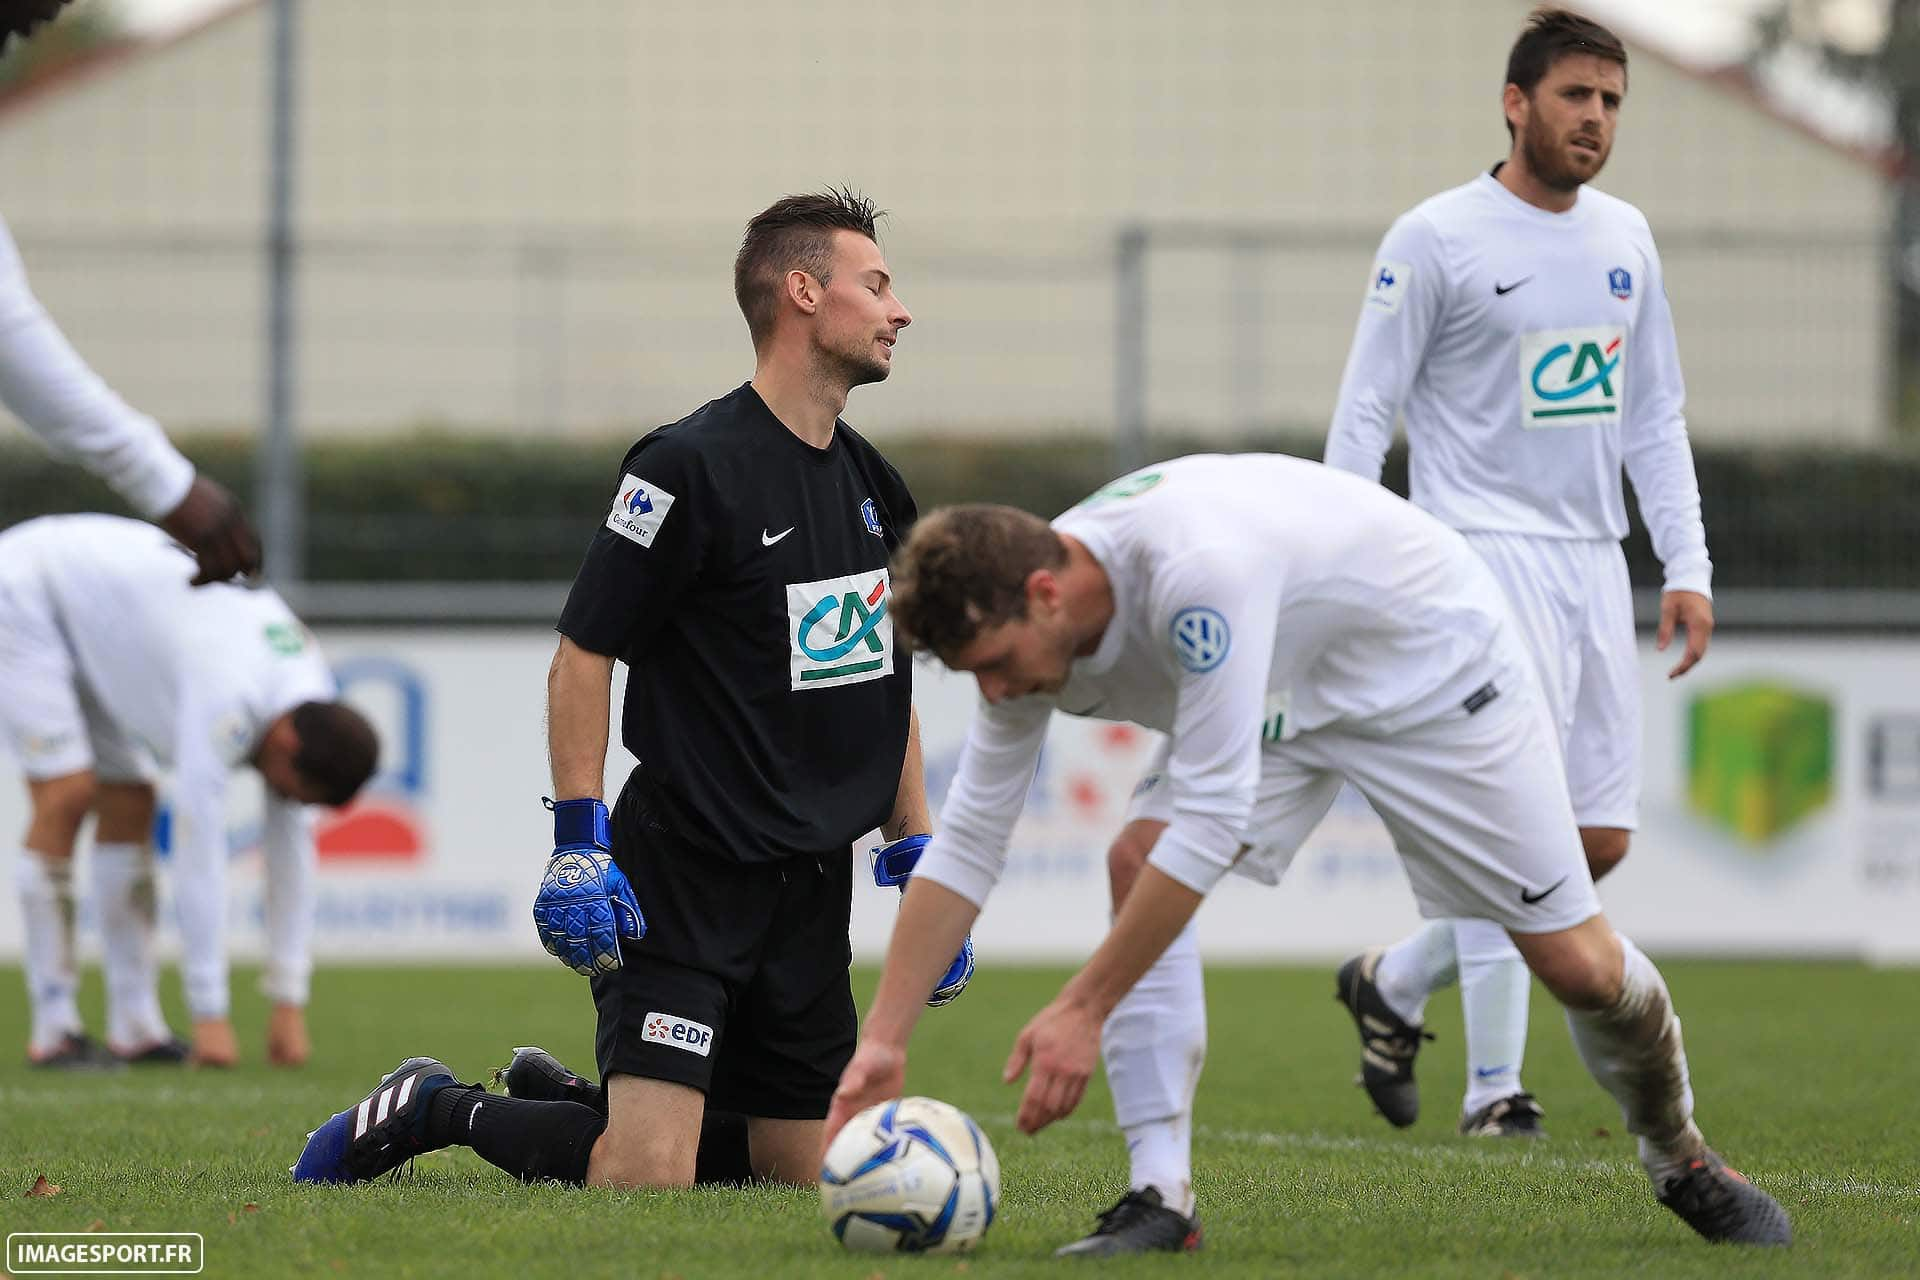 021_bonchamp-cholet-football-imagesport